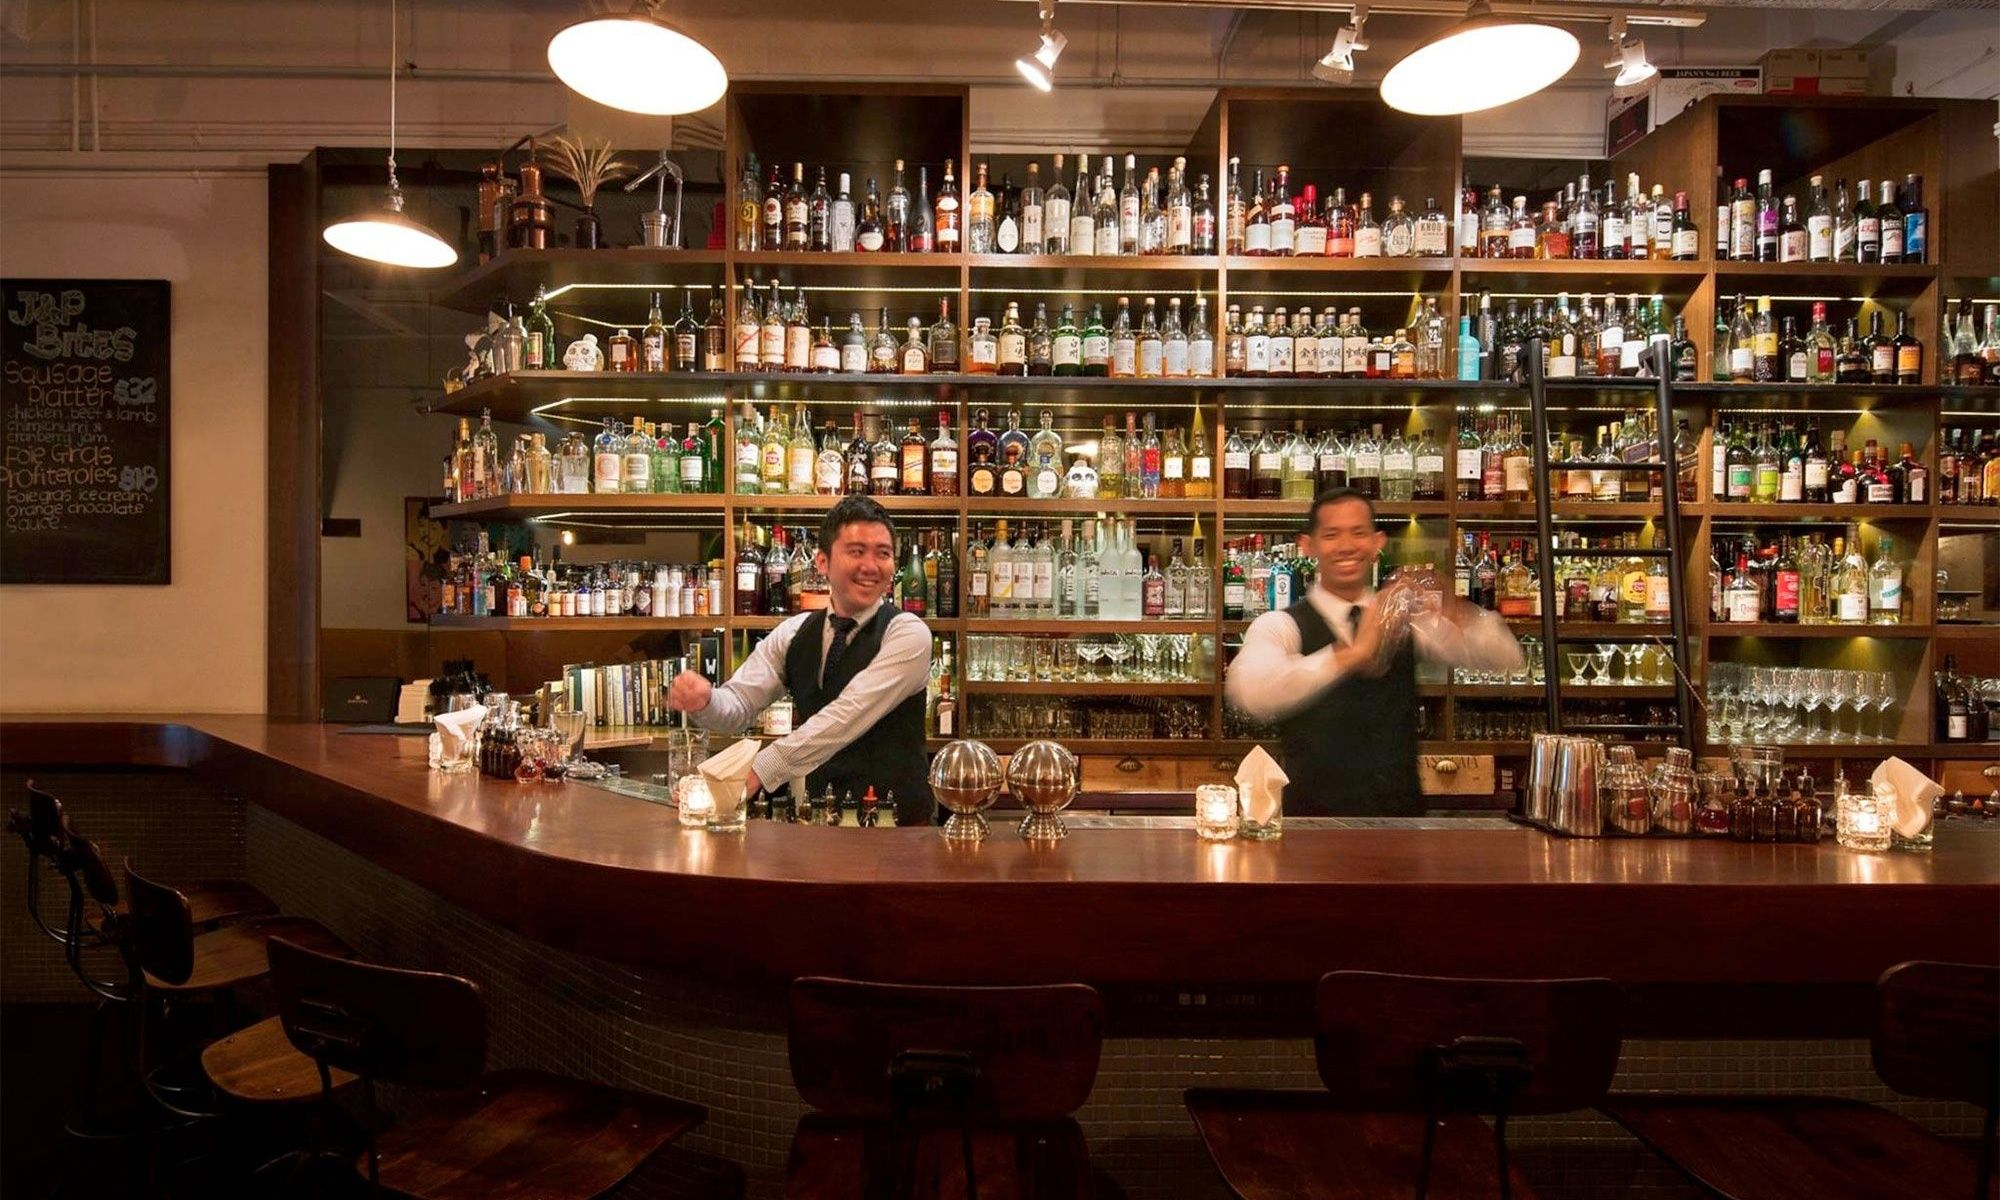 Singapore's Jigger & Pony Is Asia's No. 1 Bar In 2020